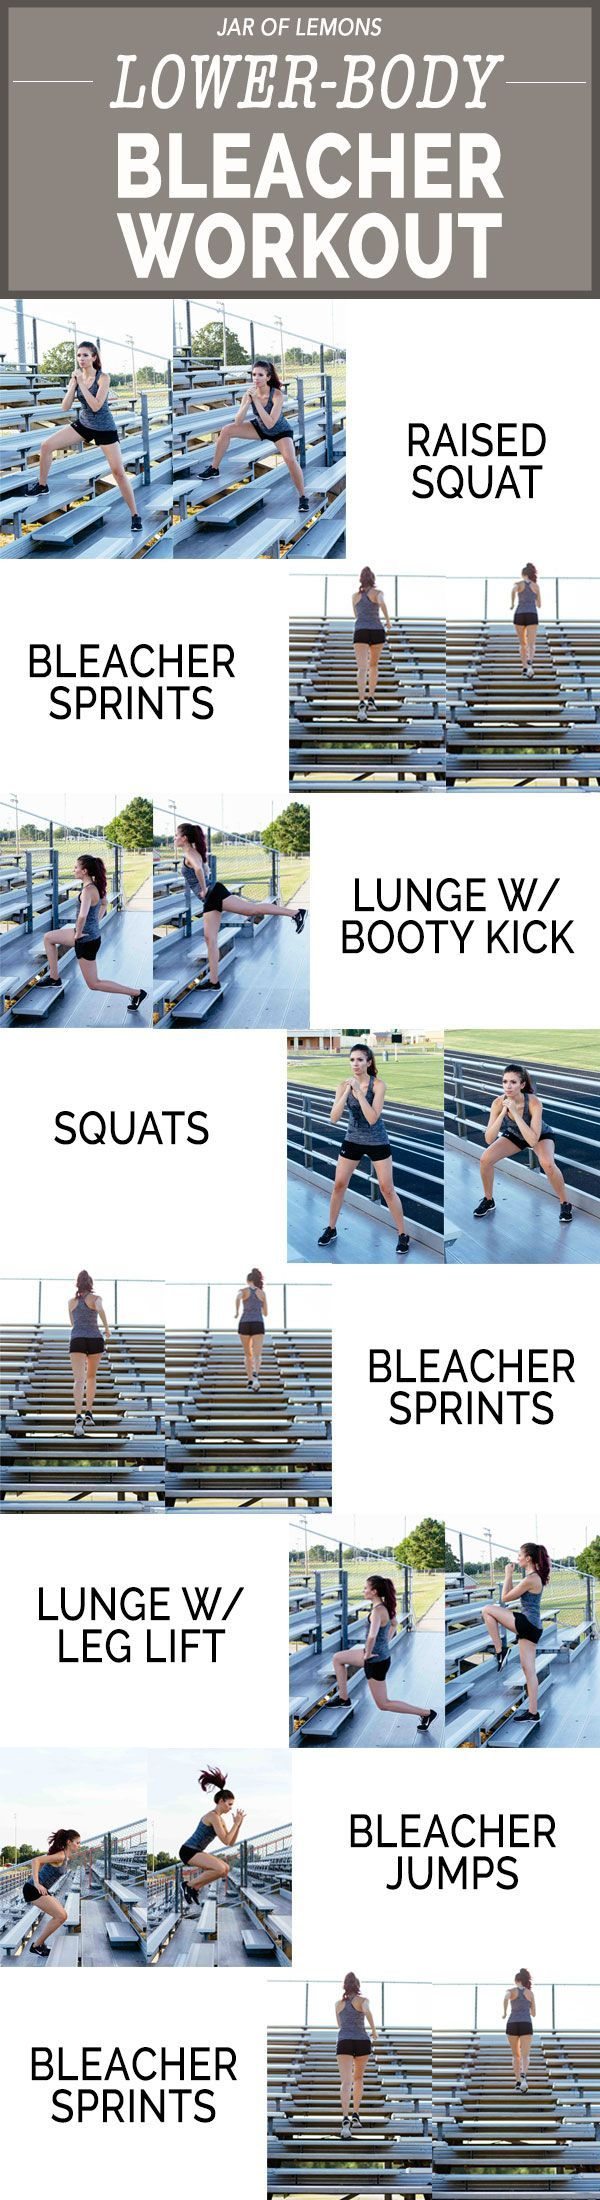 Lower-Body Bleacher Workout!                                                                                                                                                                                 More